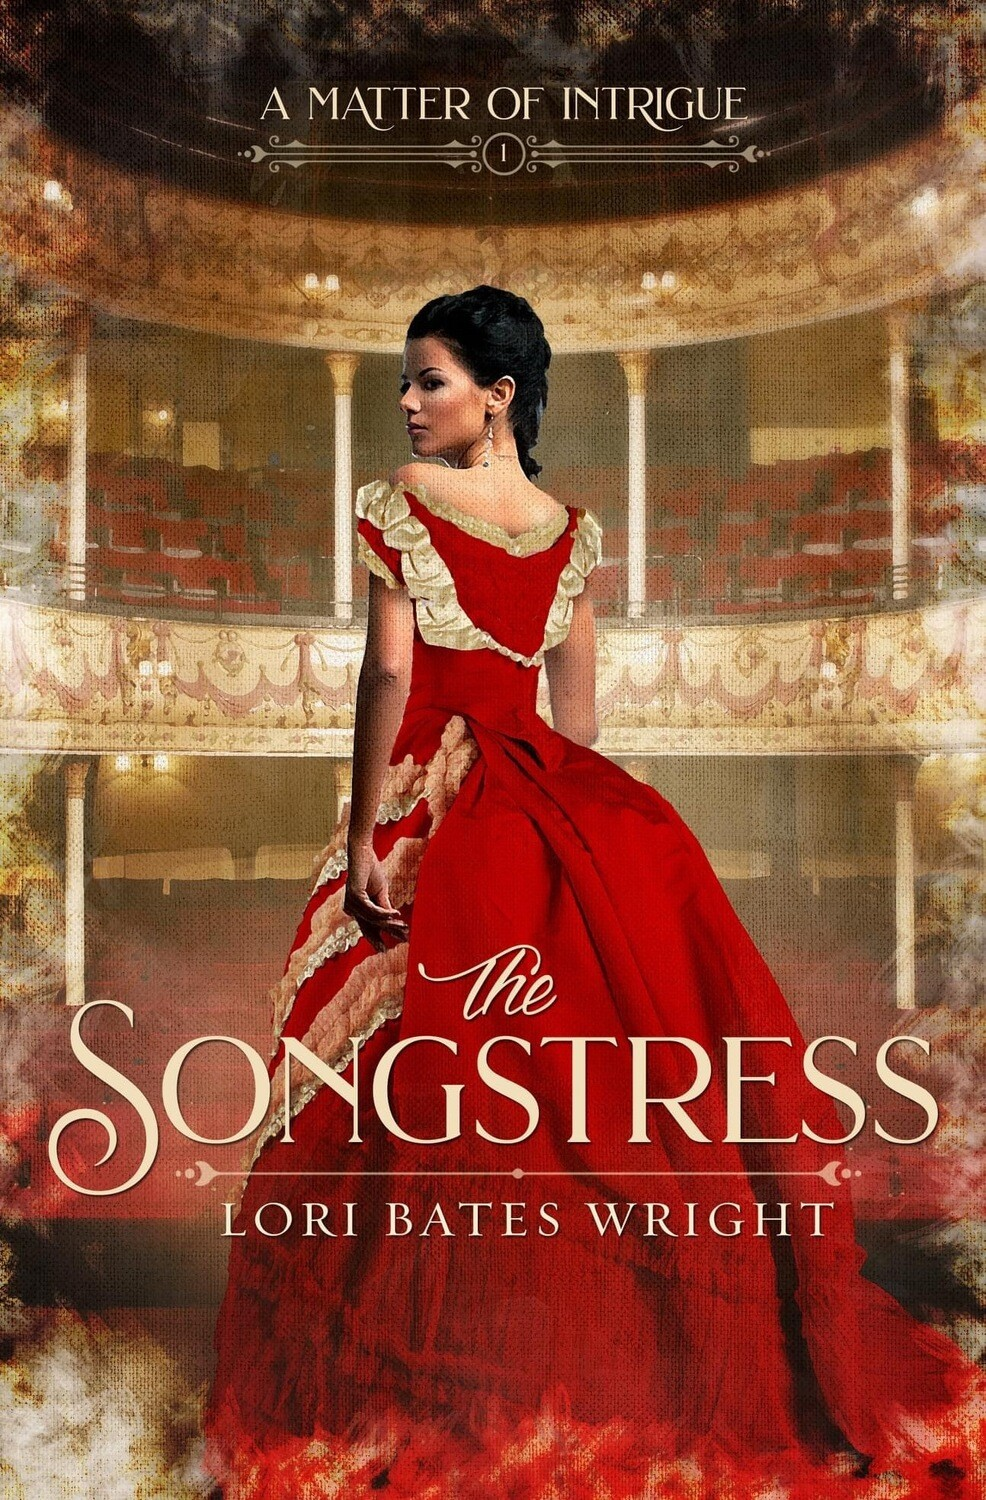 The Songstress (Signed) INCLUDES SHIPPING